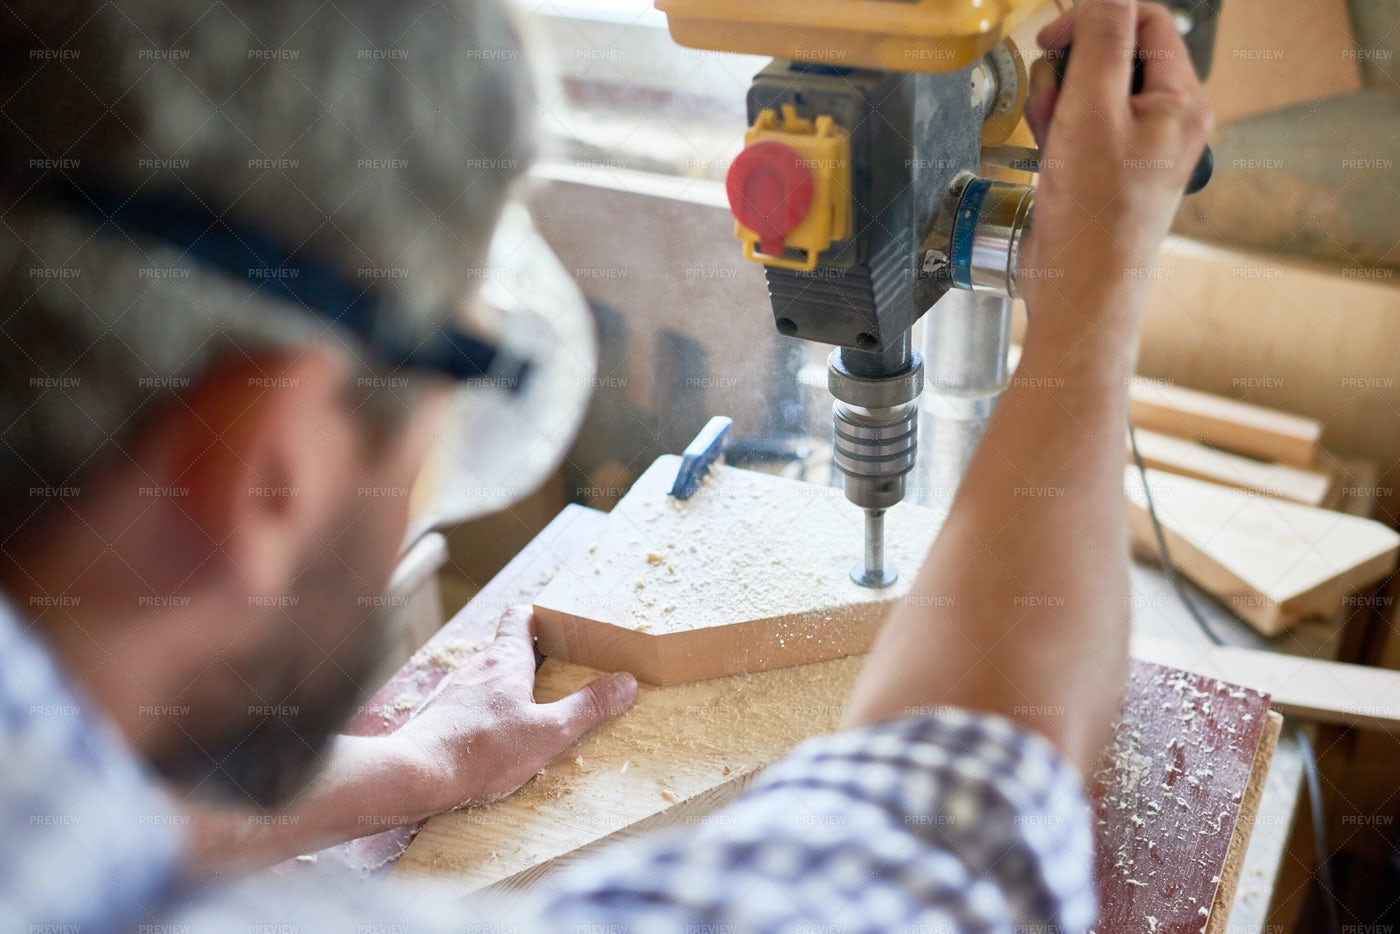 Carpenter Making Furniture: Stock Photos